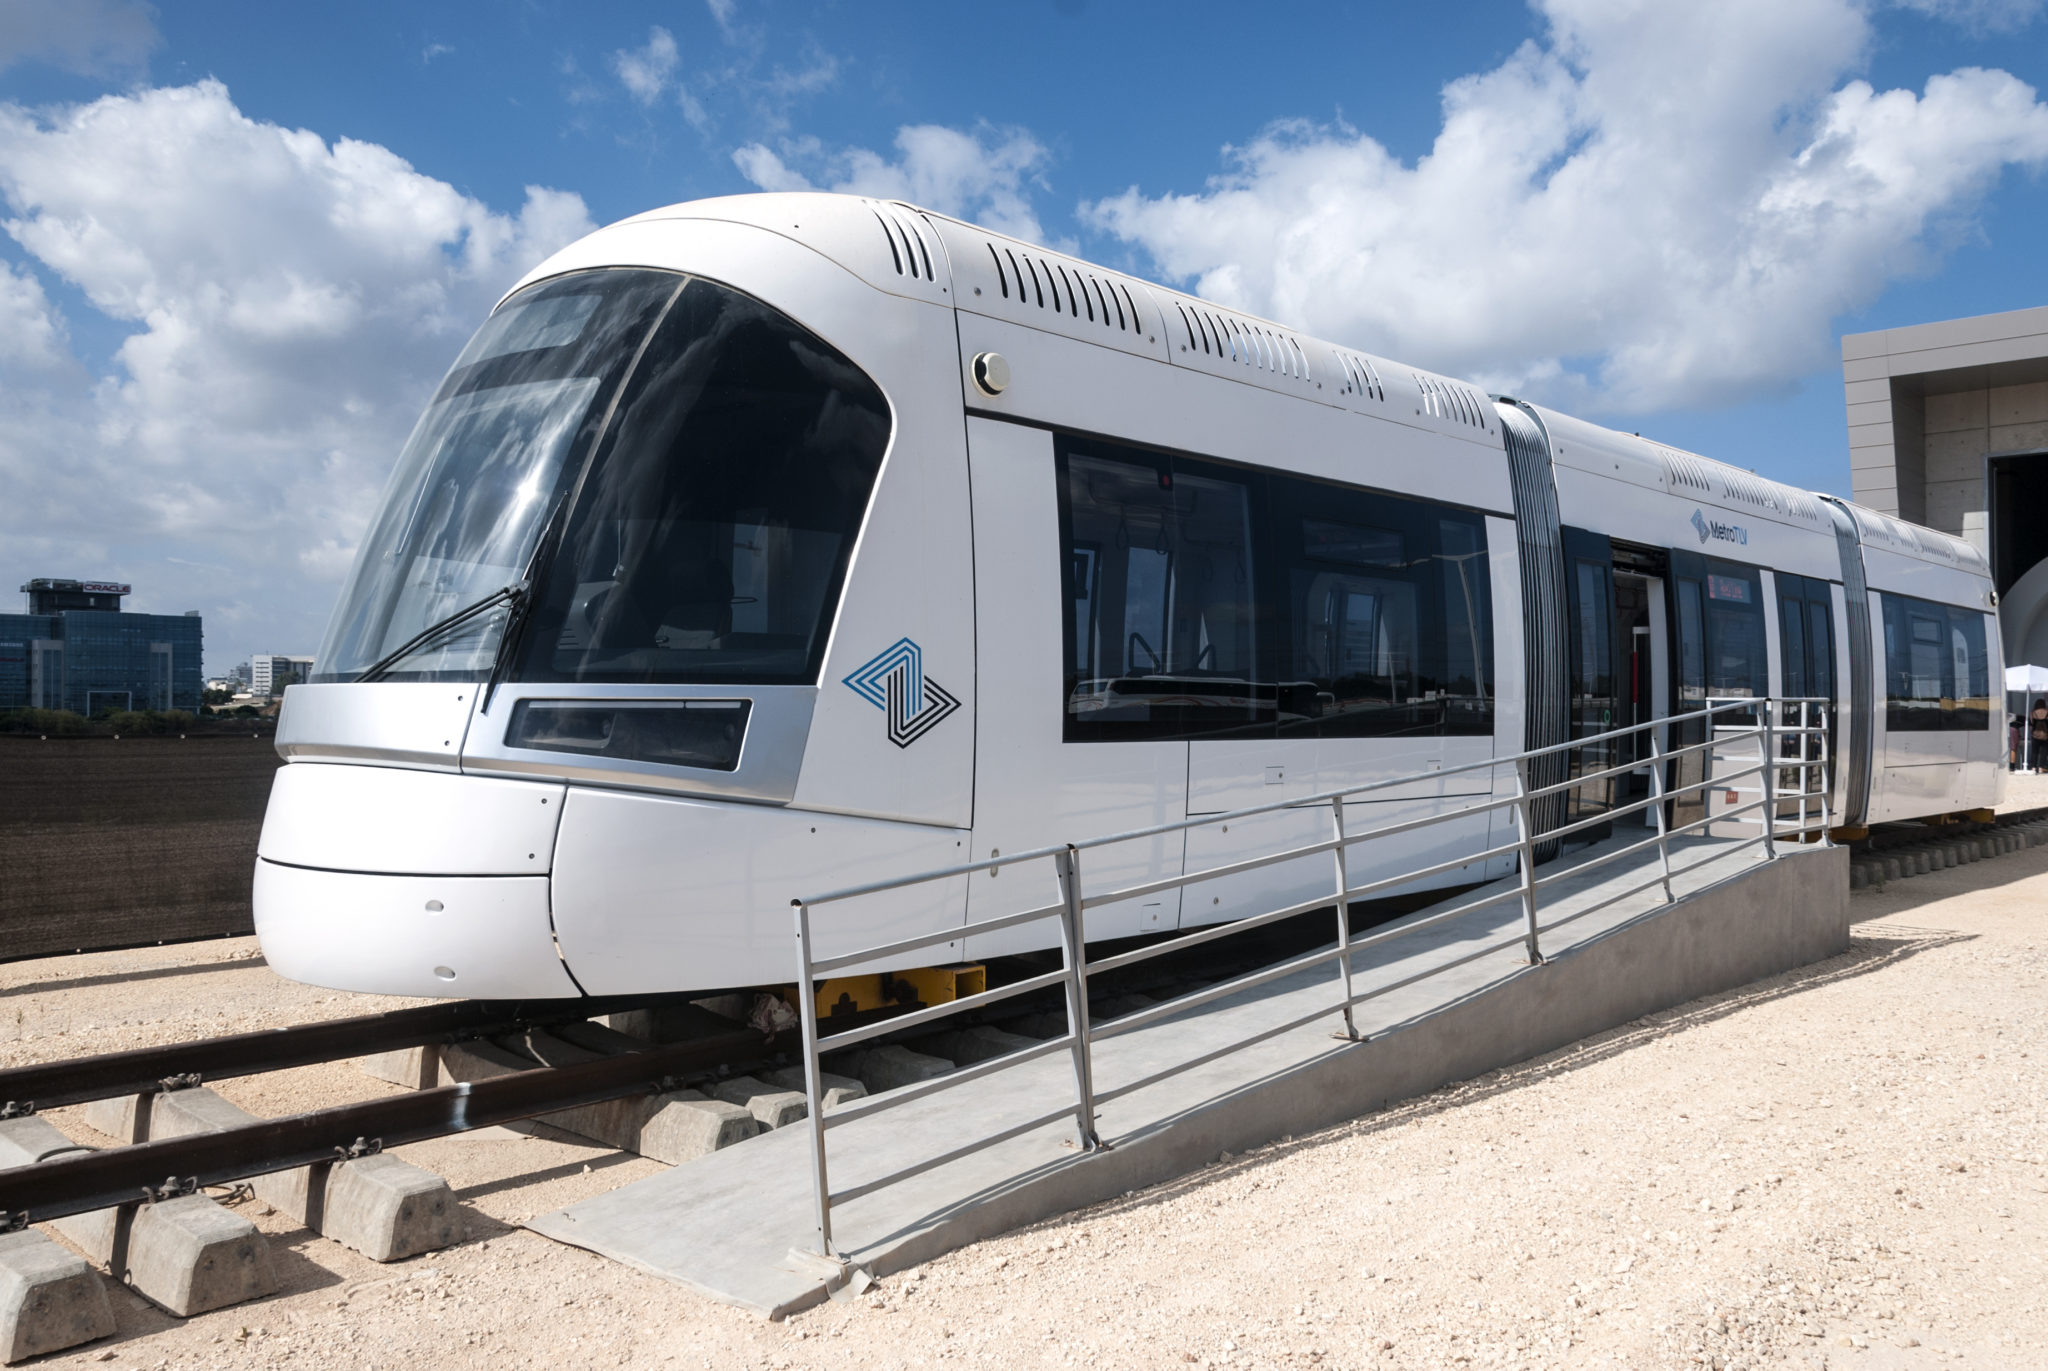 Prototype of the Tel Aviv Red Line LRV branded 'explosion-proof' by CRRC